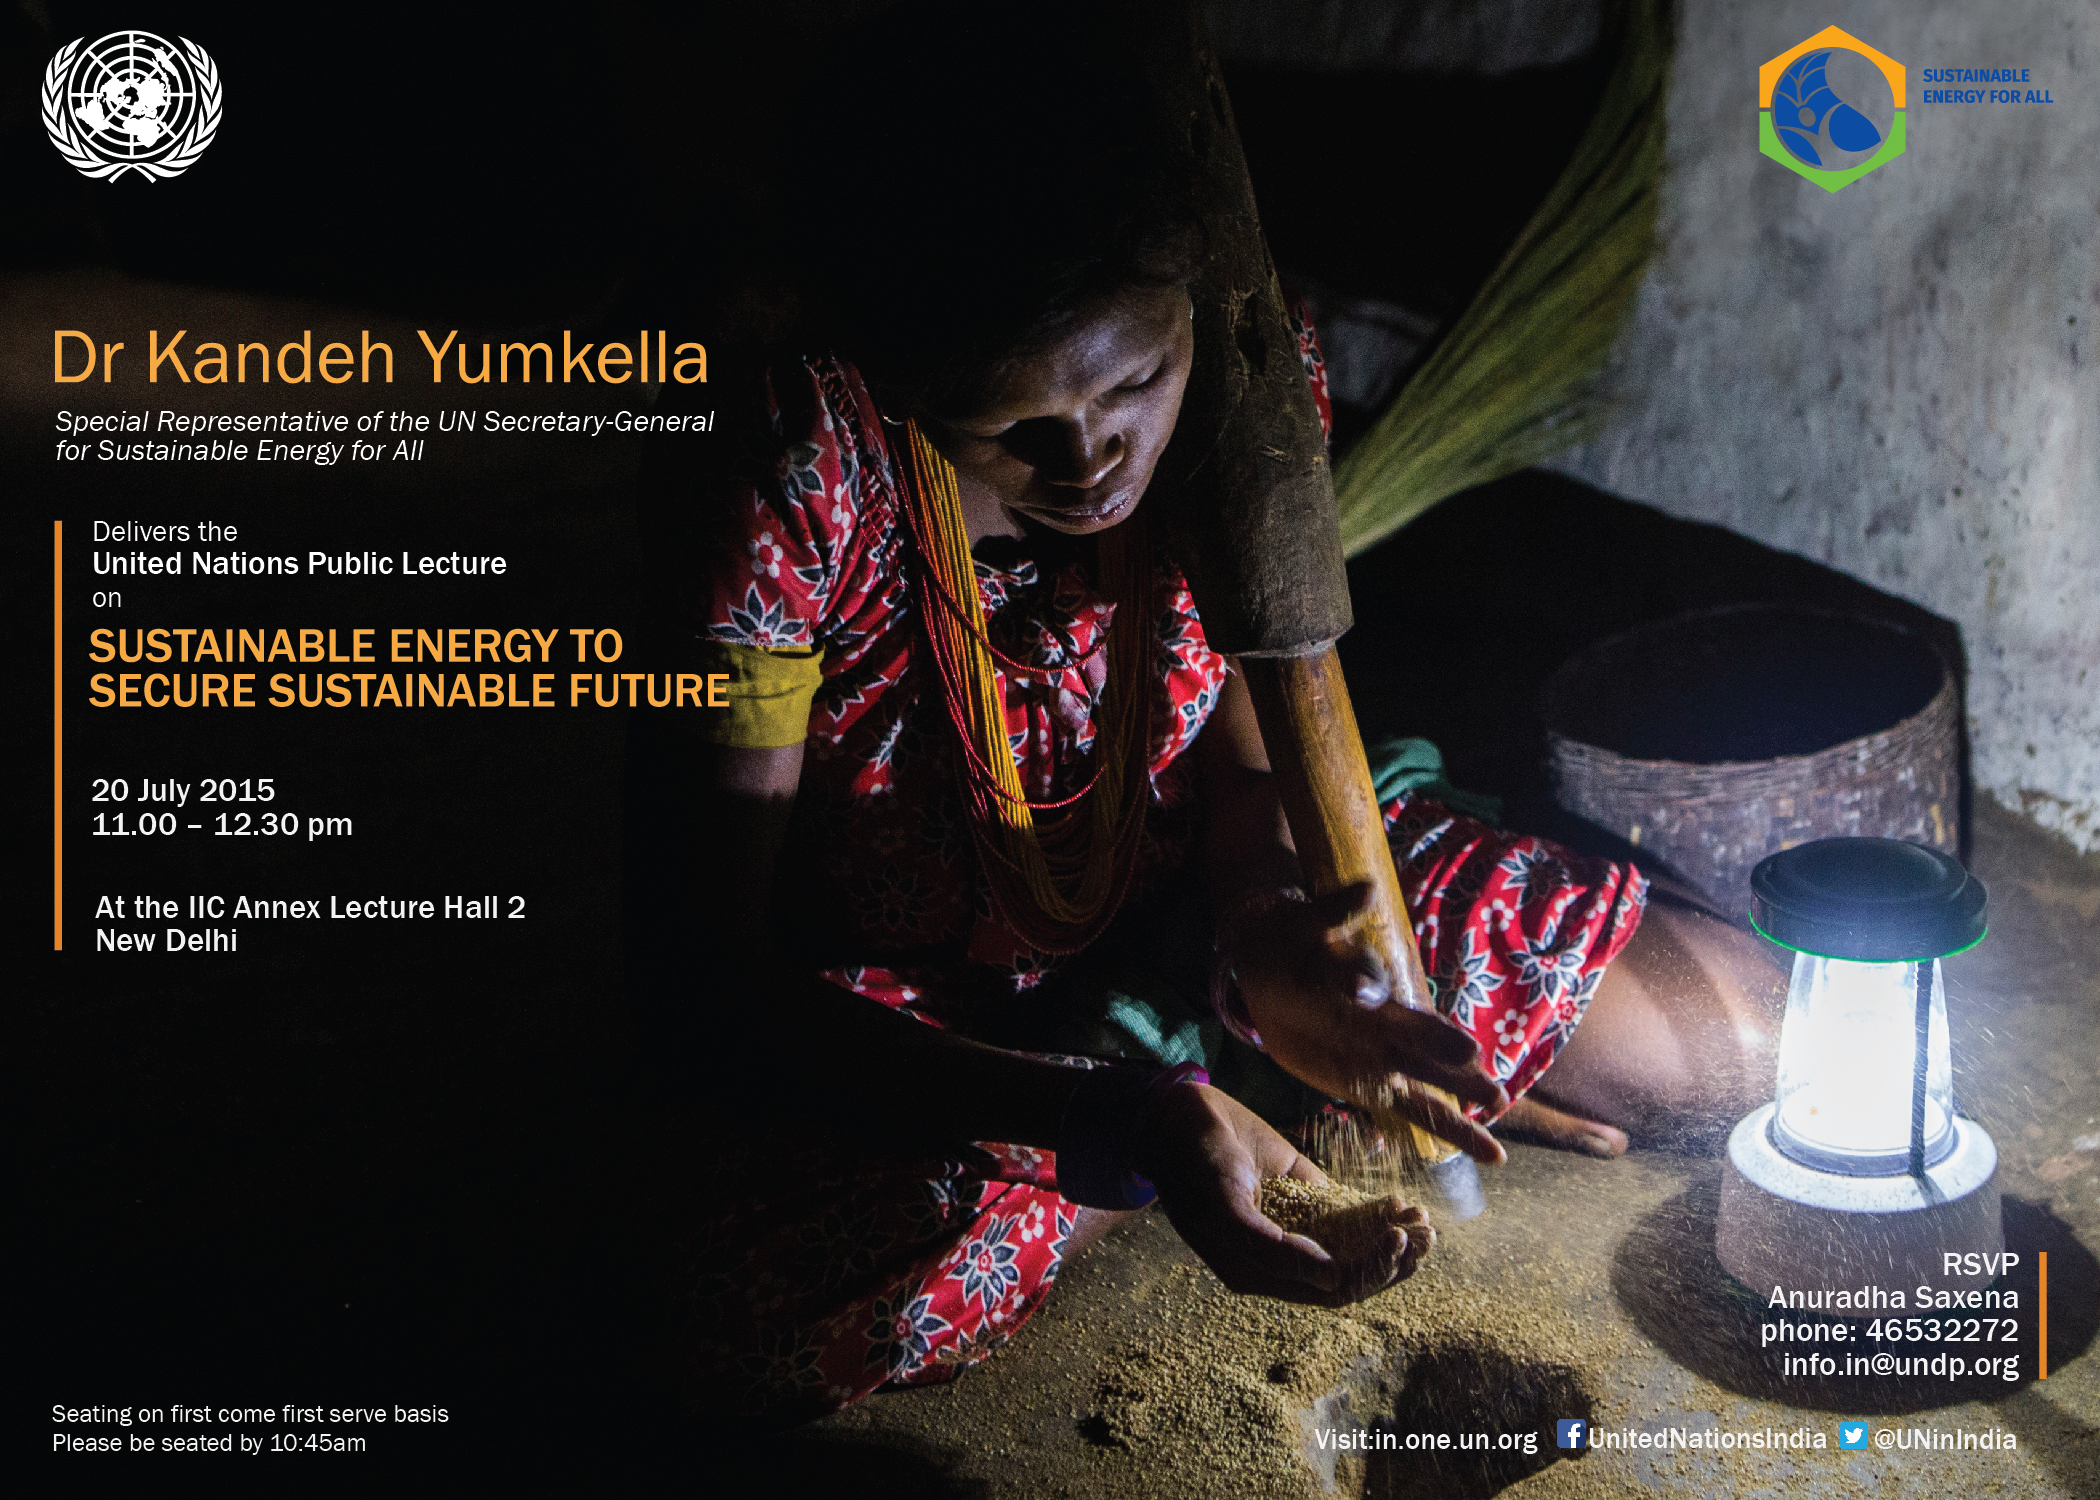 UN Public Lecture on Sustainable Energy to Secure Sustainable Future